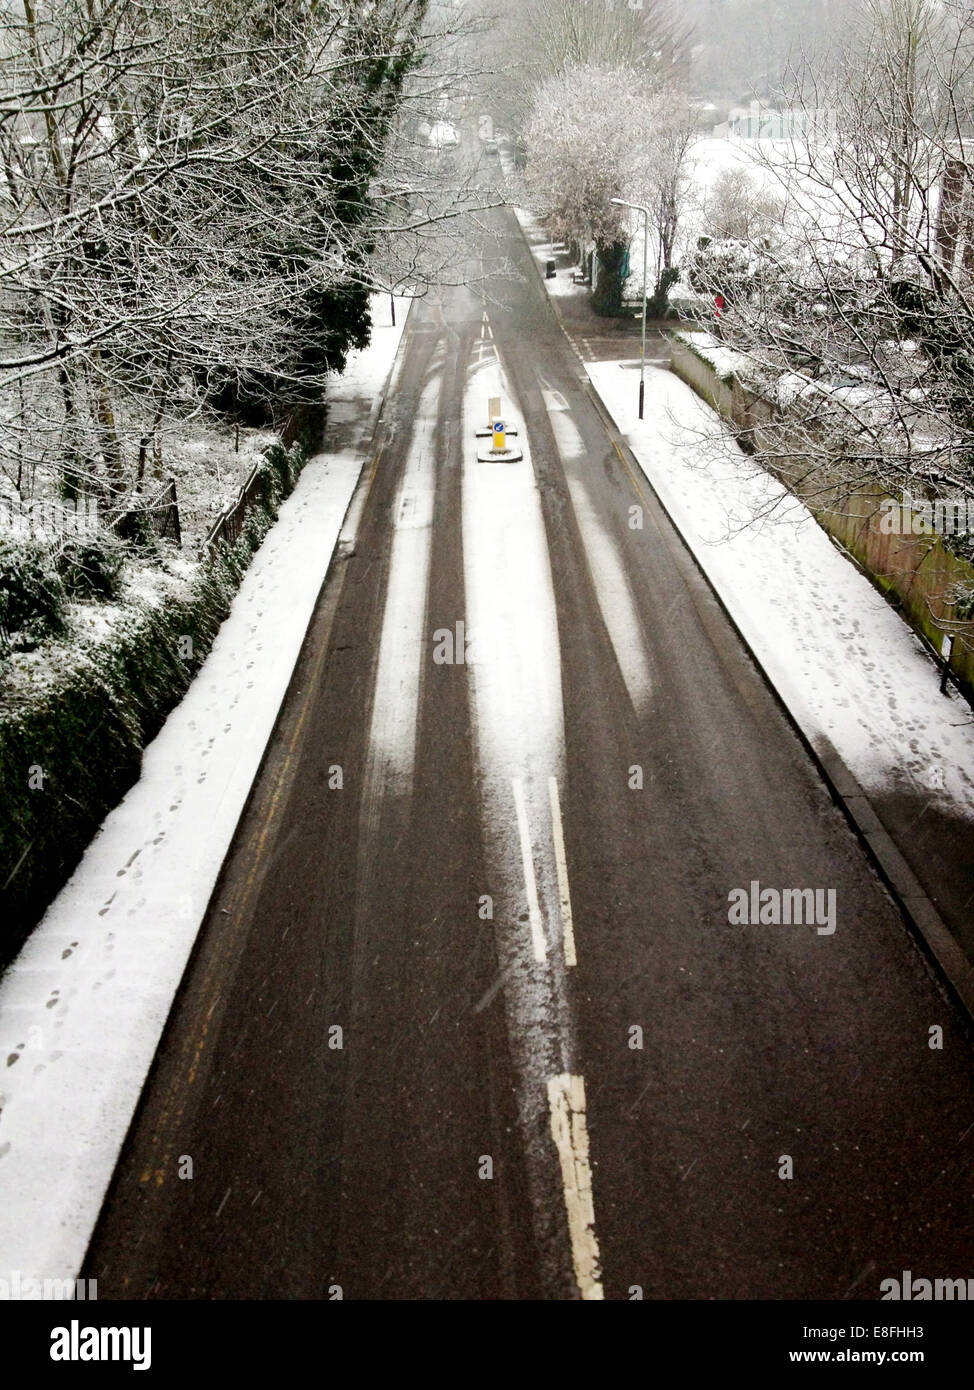 Londres, Reino Unido, London Borough of Haringey, Crouch End, camino cubierto de nieve Imagen De Stock